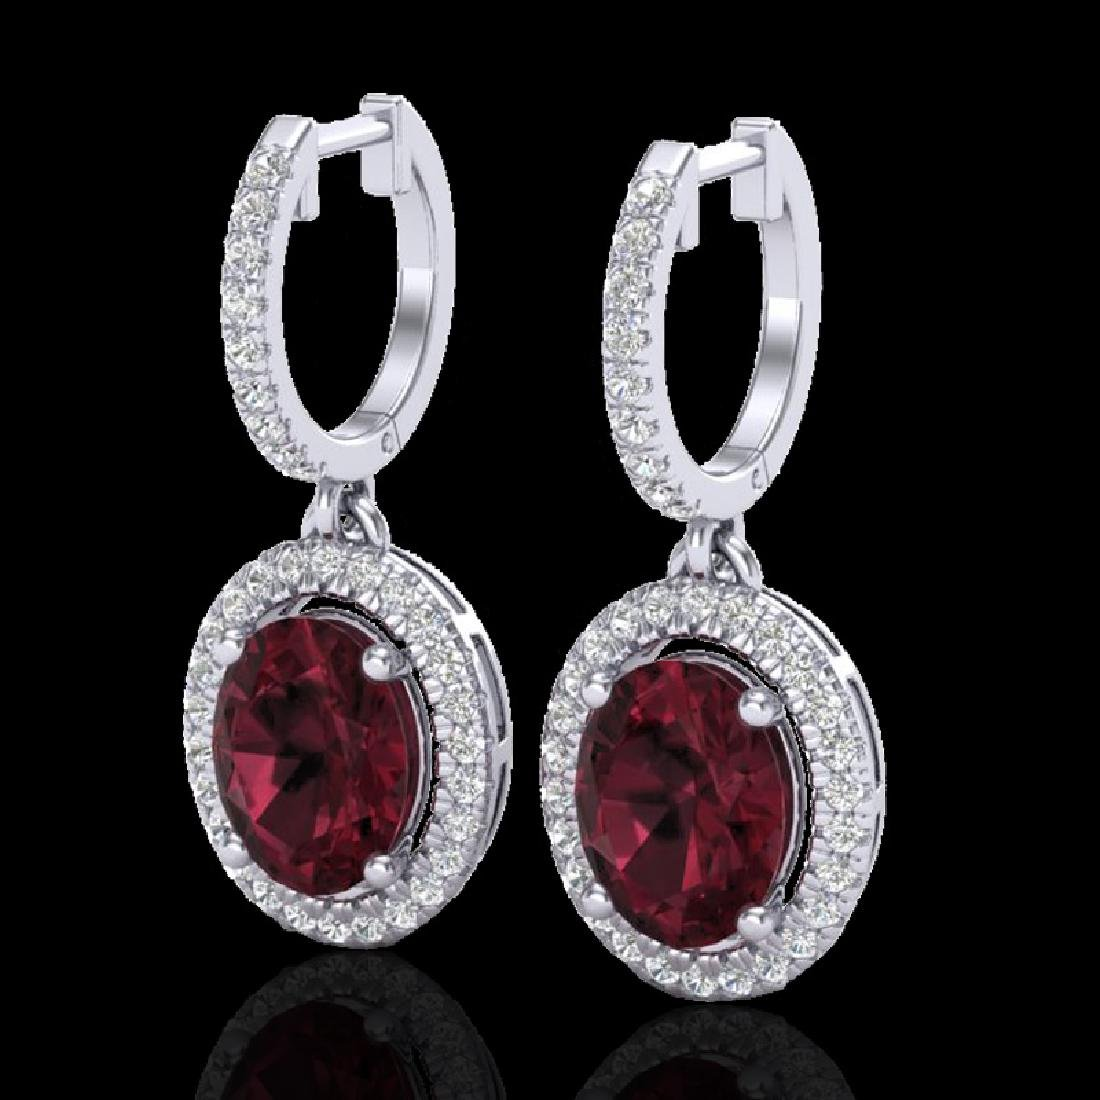 3.75 CTW Garnet & Micro Pave VS/SI Diamond Earrings